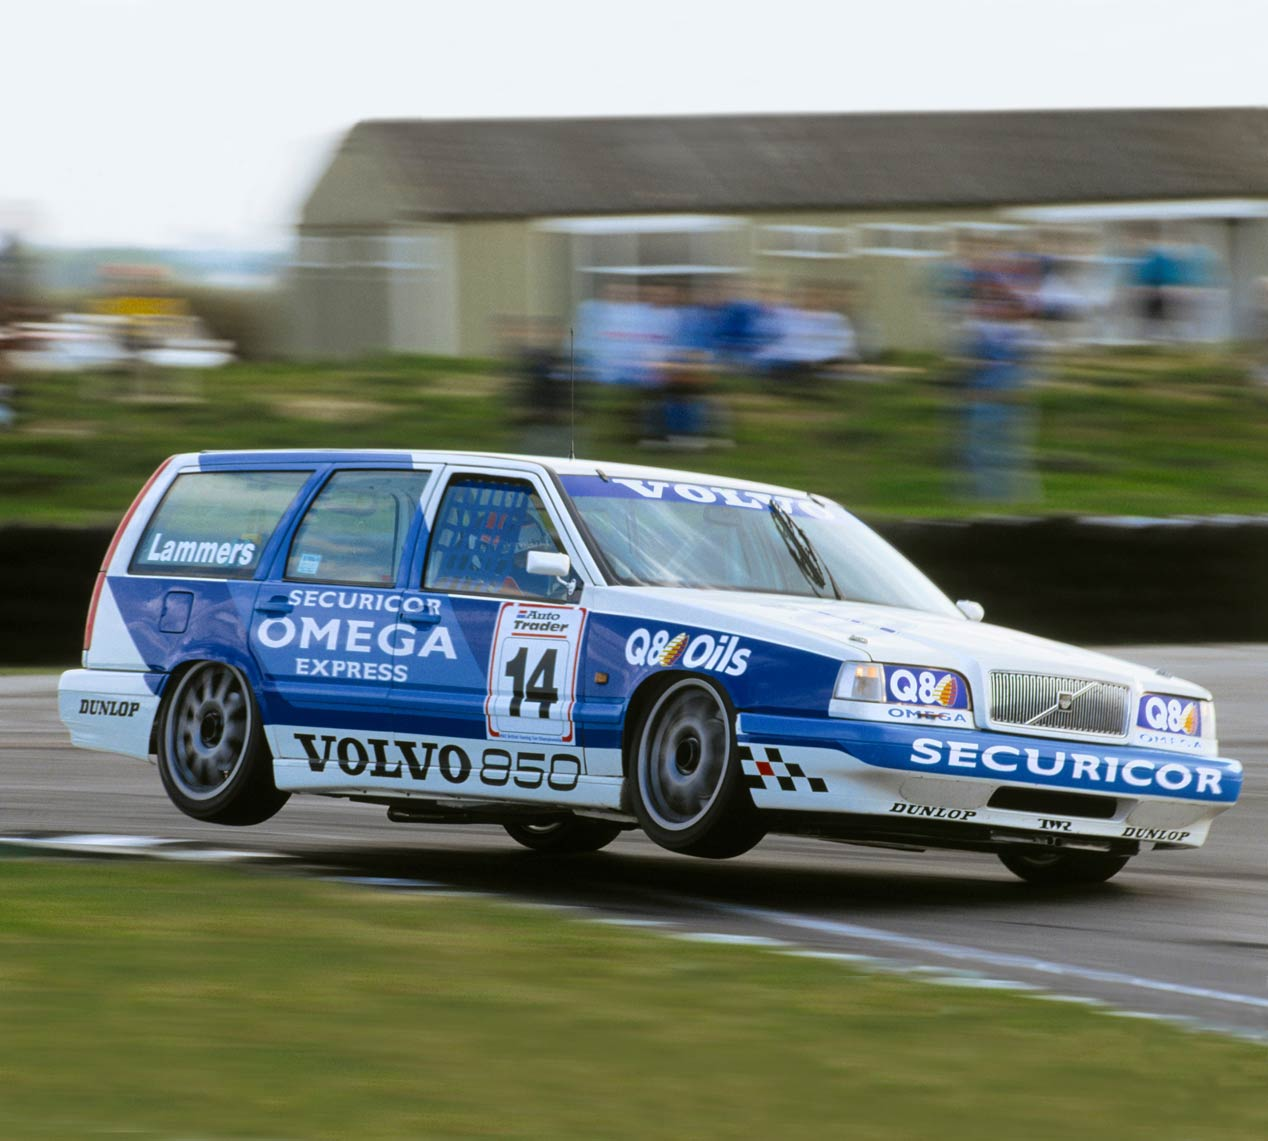 Volvo 850 familiar de carreras